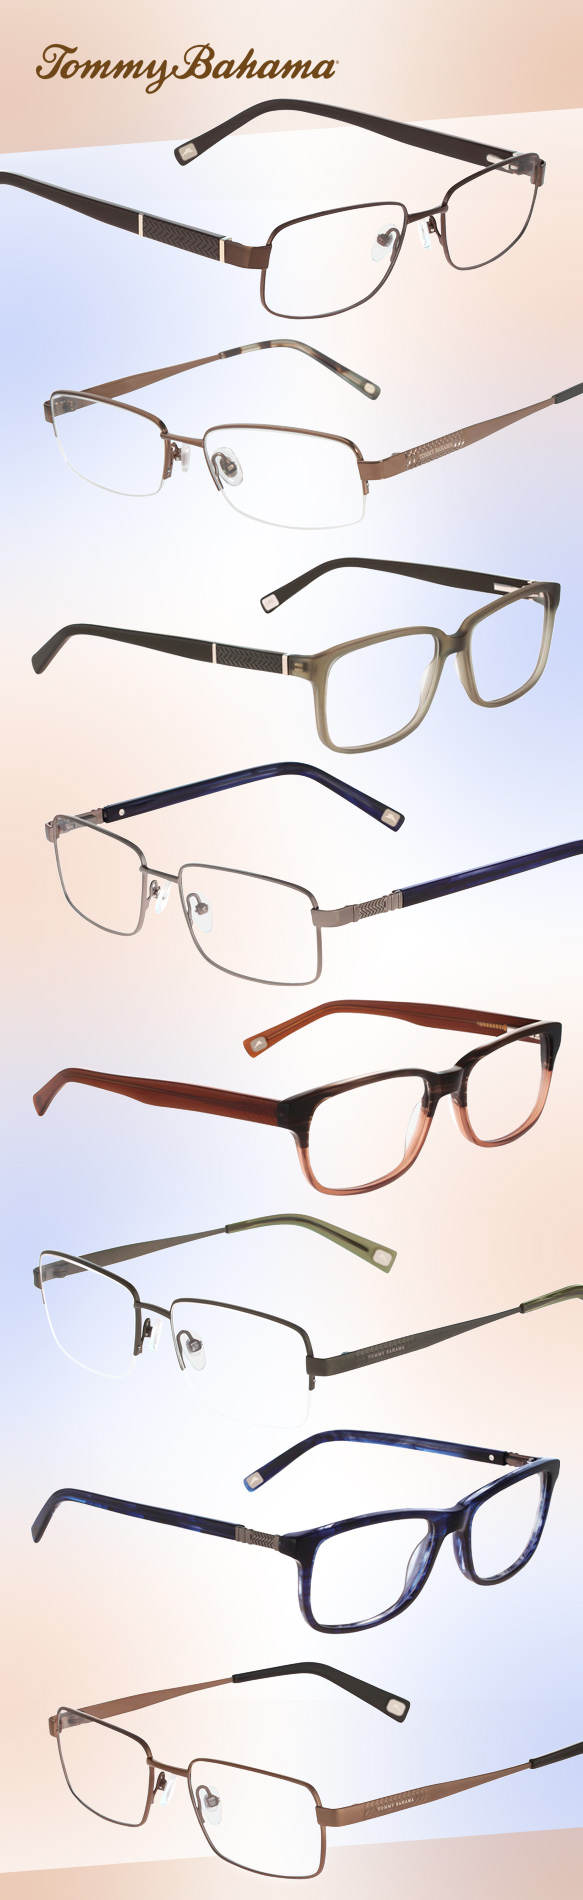 Tommy Bahama: A Fresh Take on Beach Chic – Eyecessorize